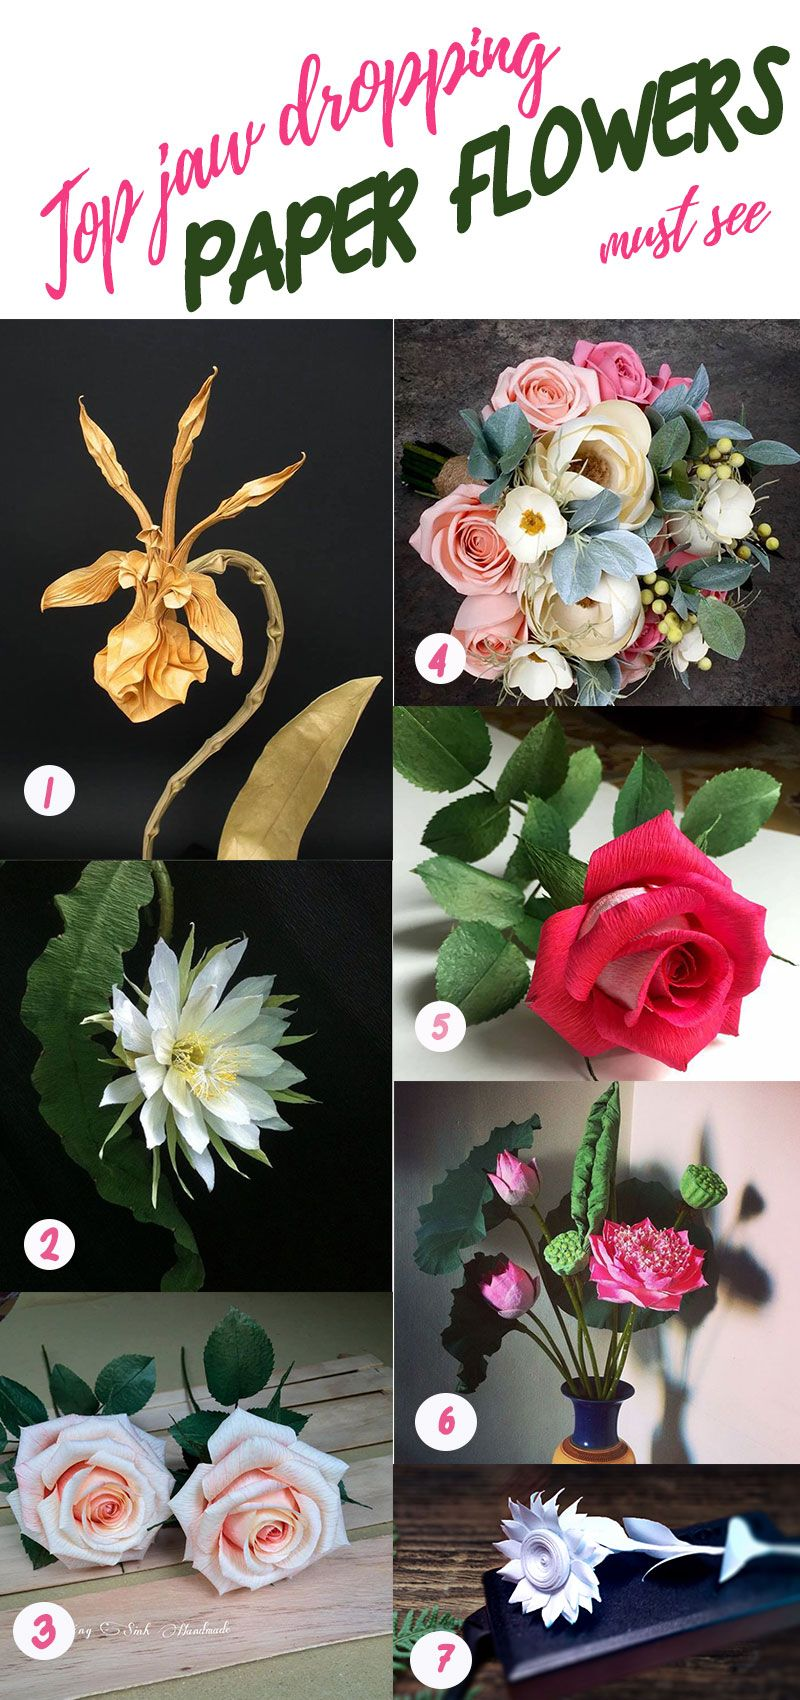 Best paper flowers you will see with jaw drop must see flower best paper flowers you will see with jaw drop must see mightylinksfo